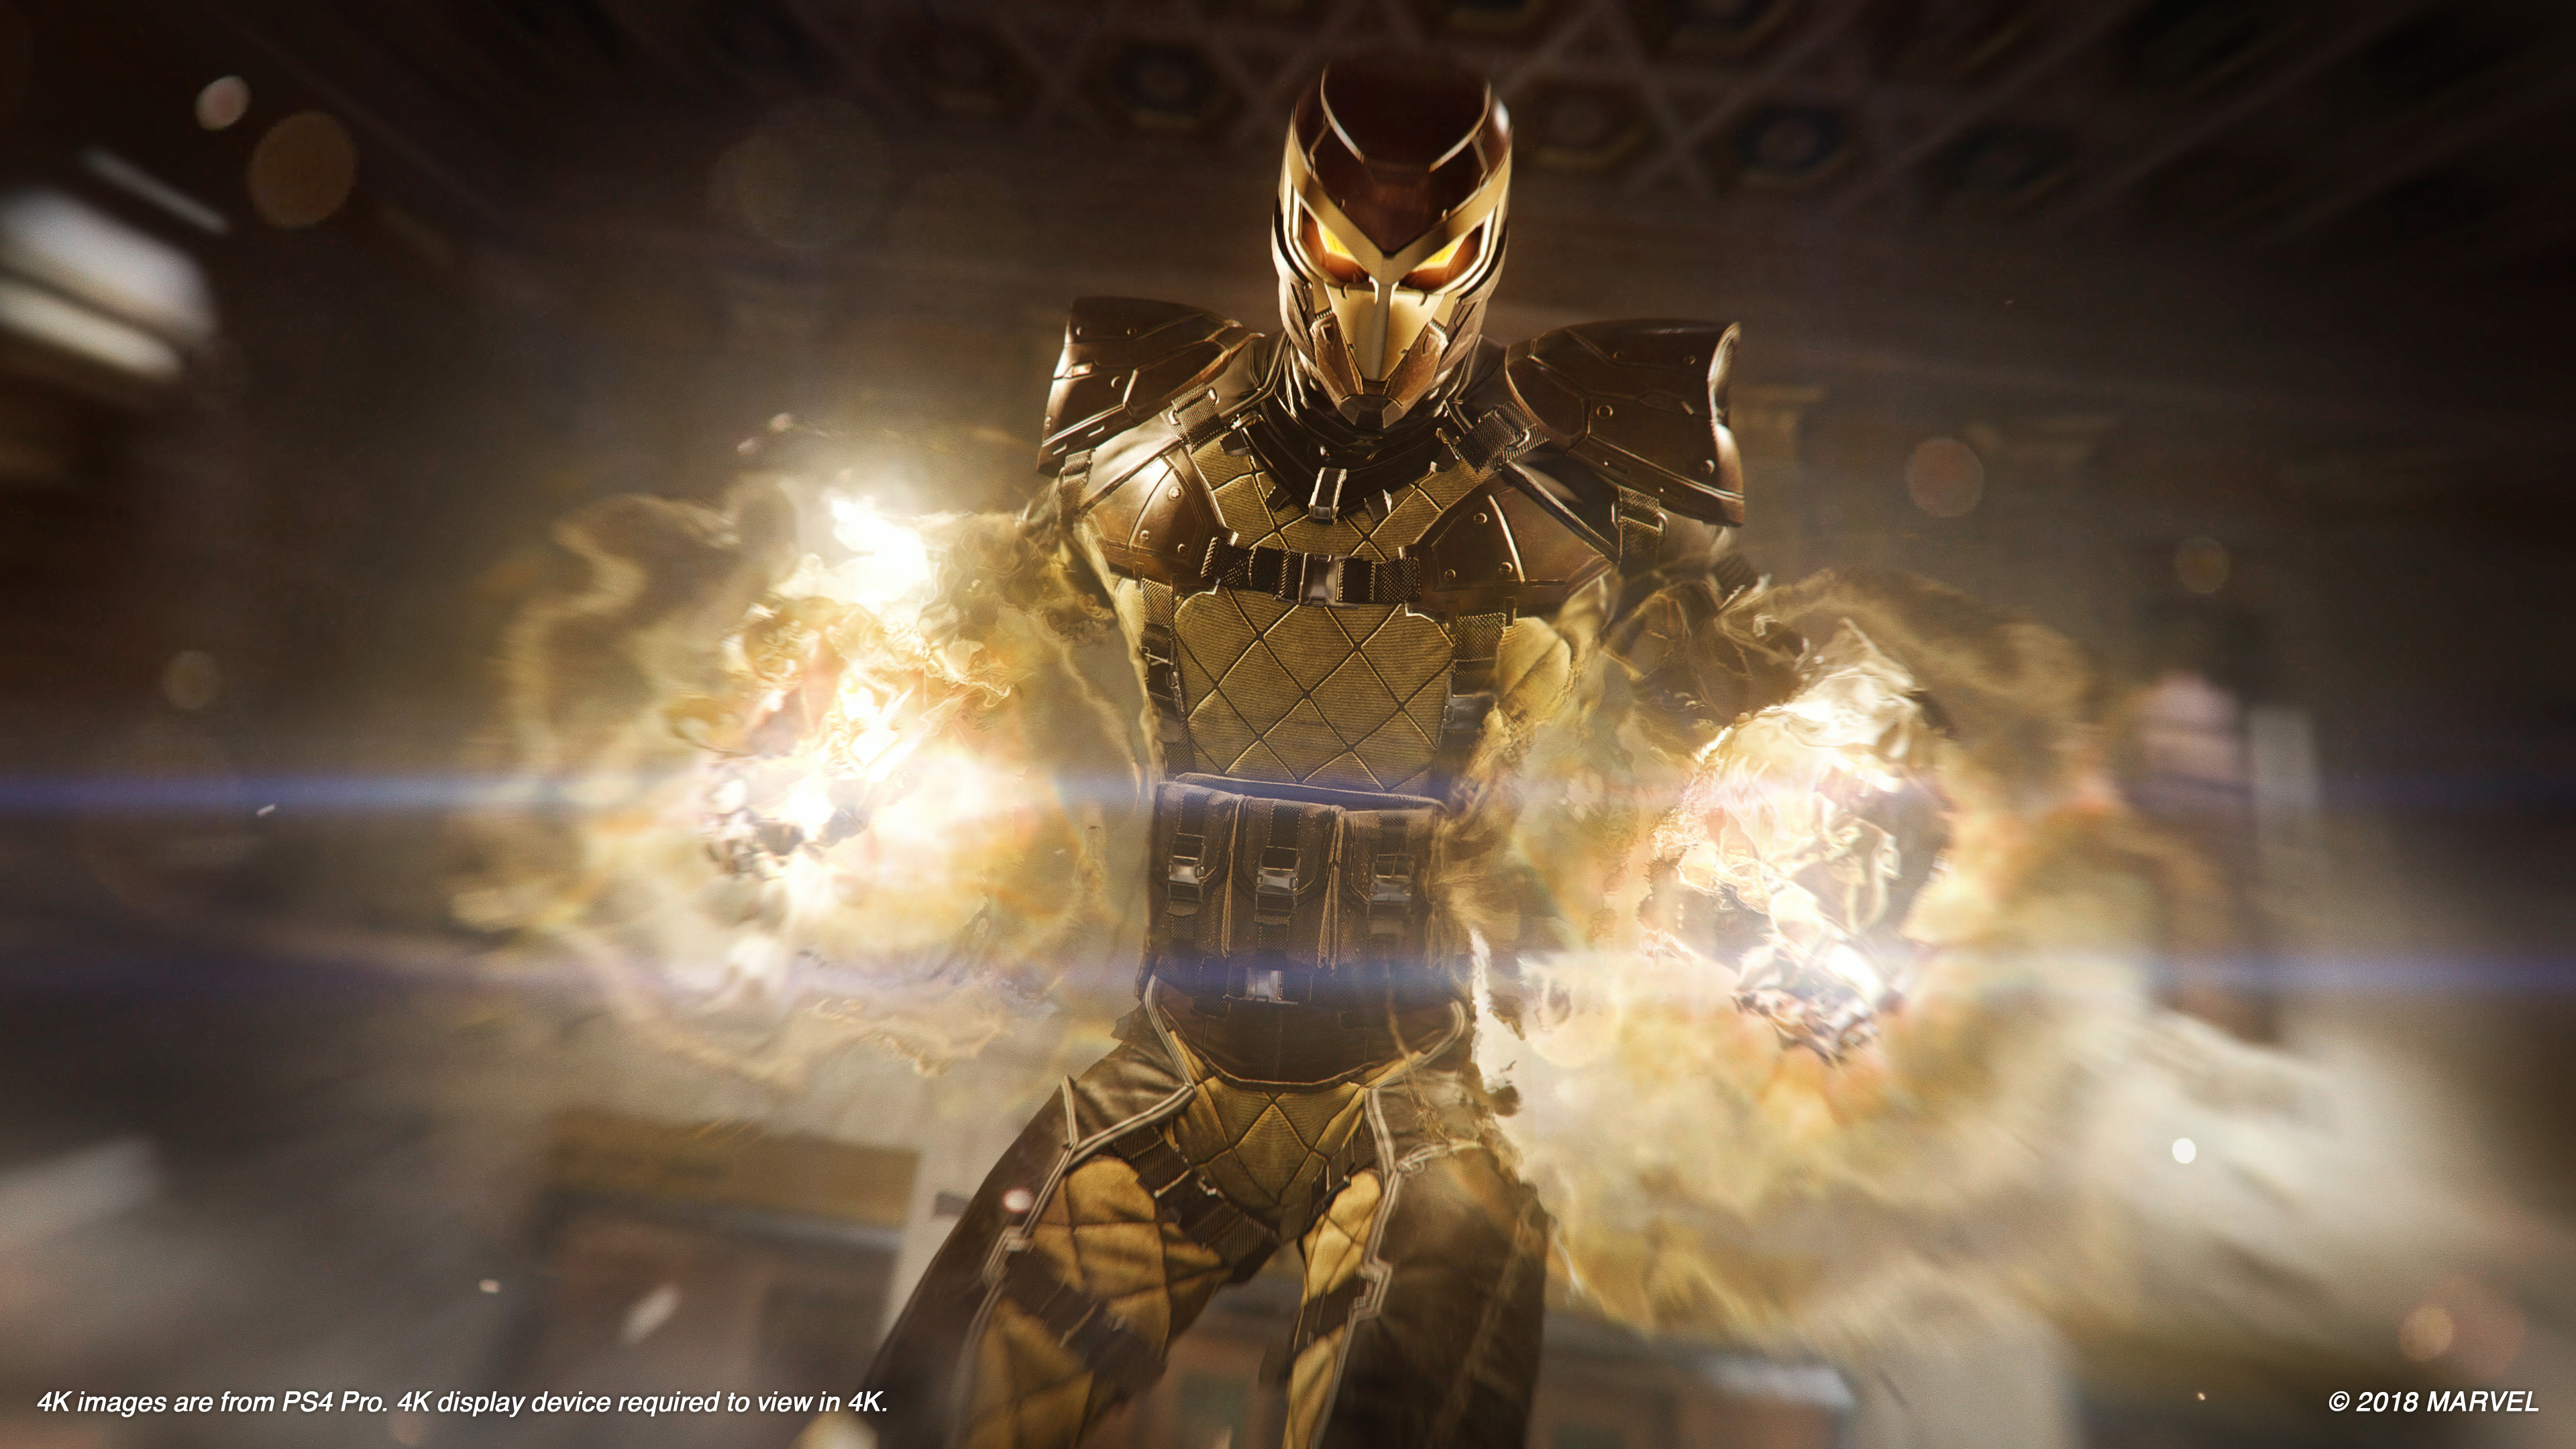 Spider-Man PS4 villains guide: Vulture, Shocker, Electro and